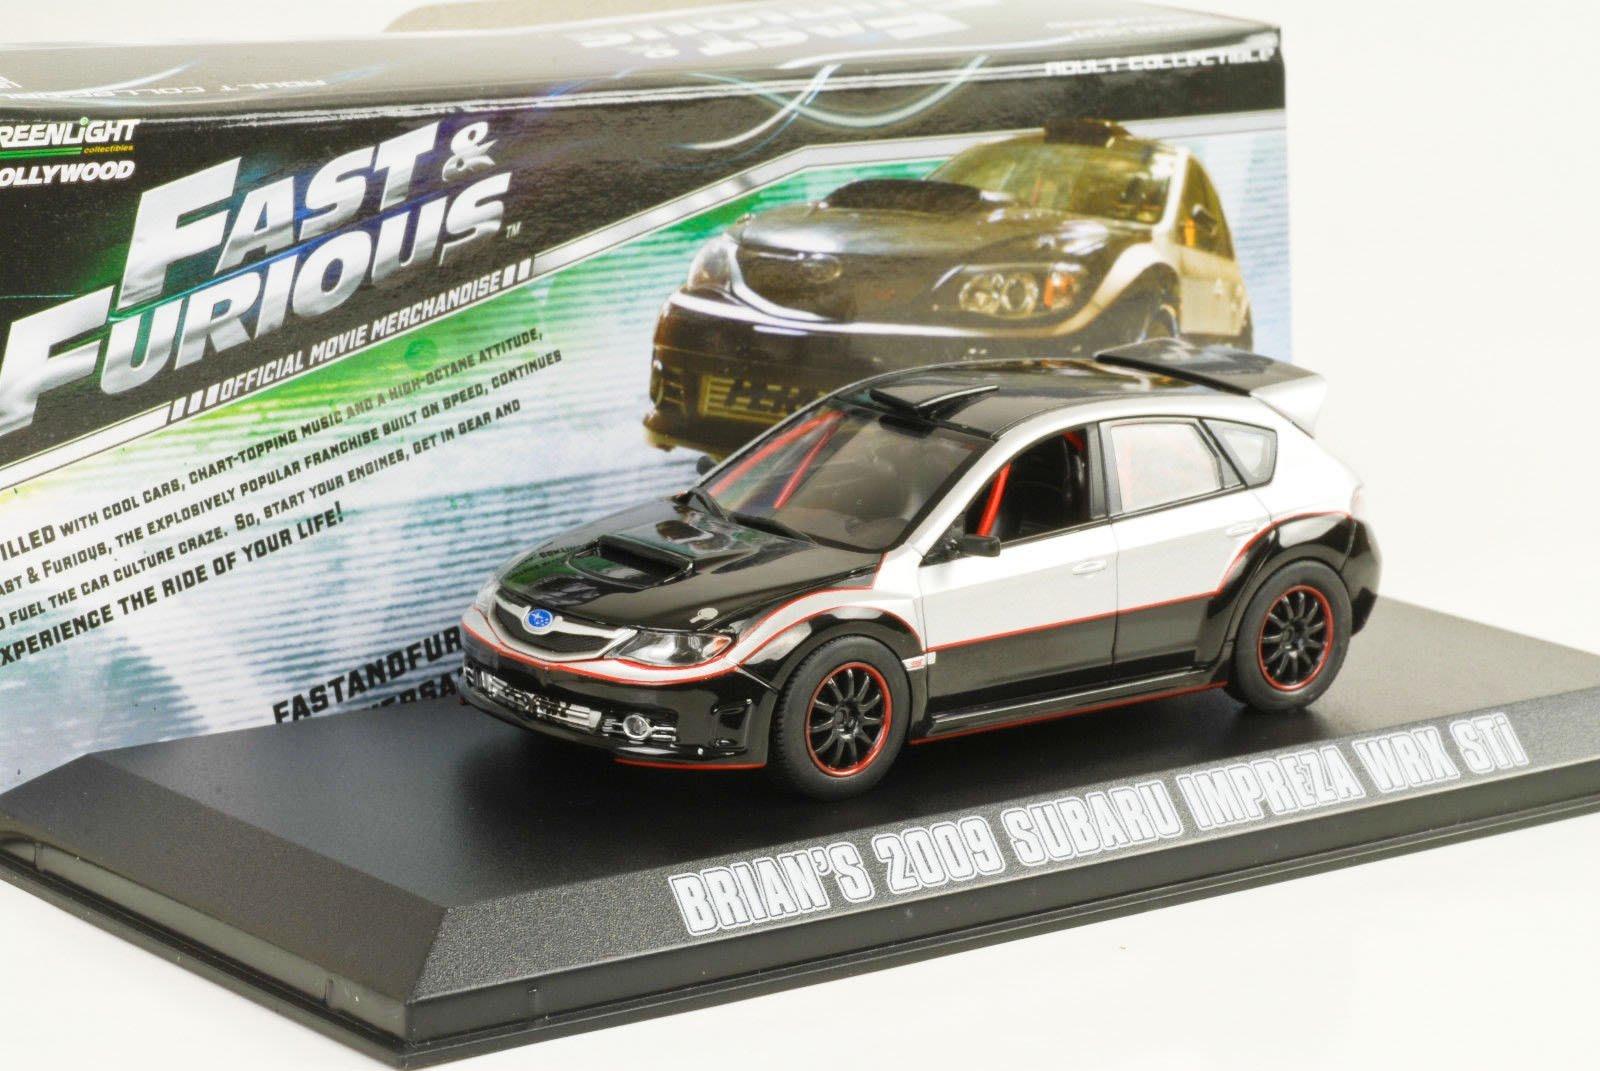 【現貨特價】玩命關頭 布萊恩 1:43 Subaru Impreza WRX STi Fast and Furious